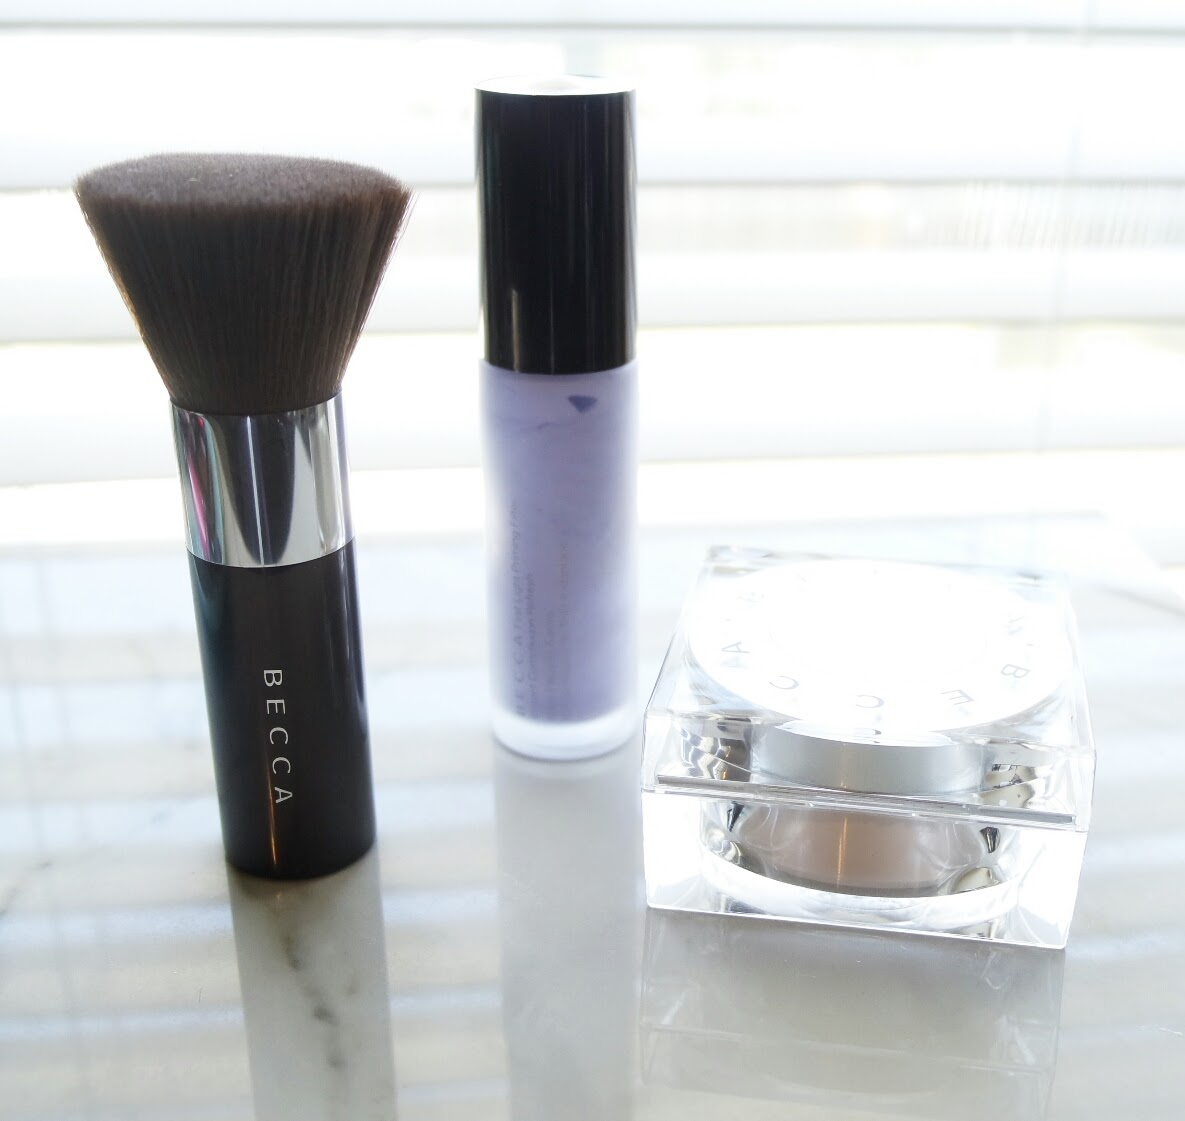 Becca First Light Priming Filter and Soft light Blurring powder